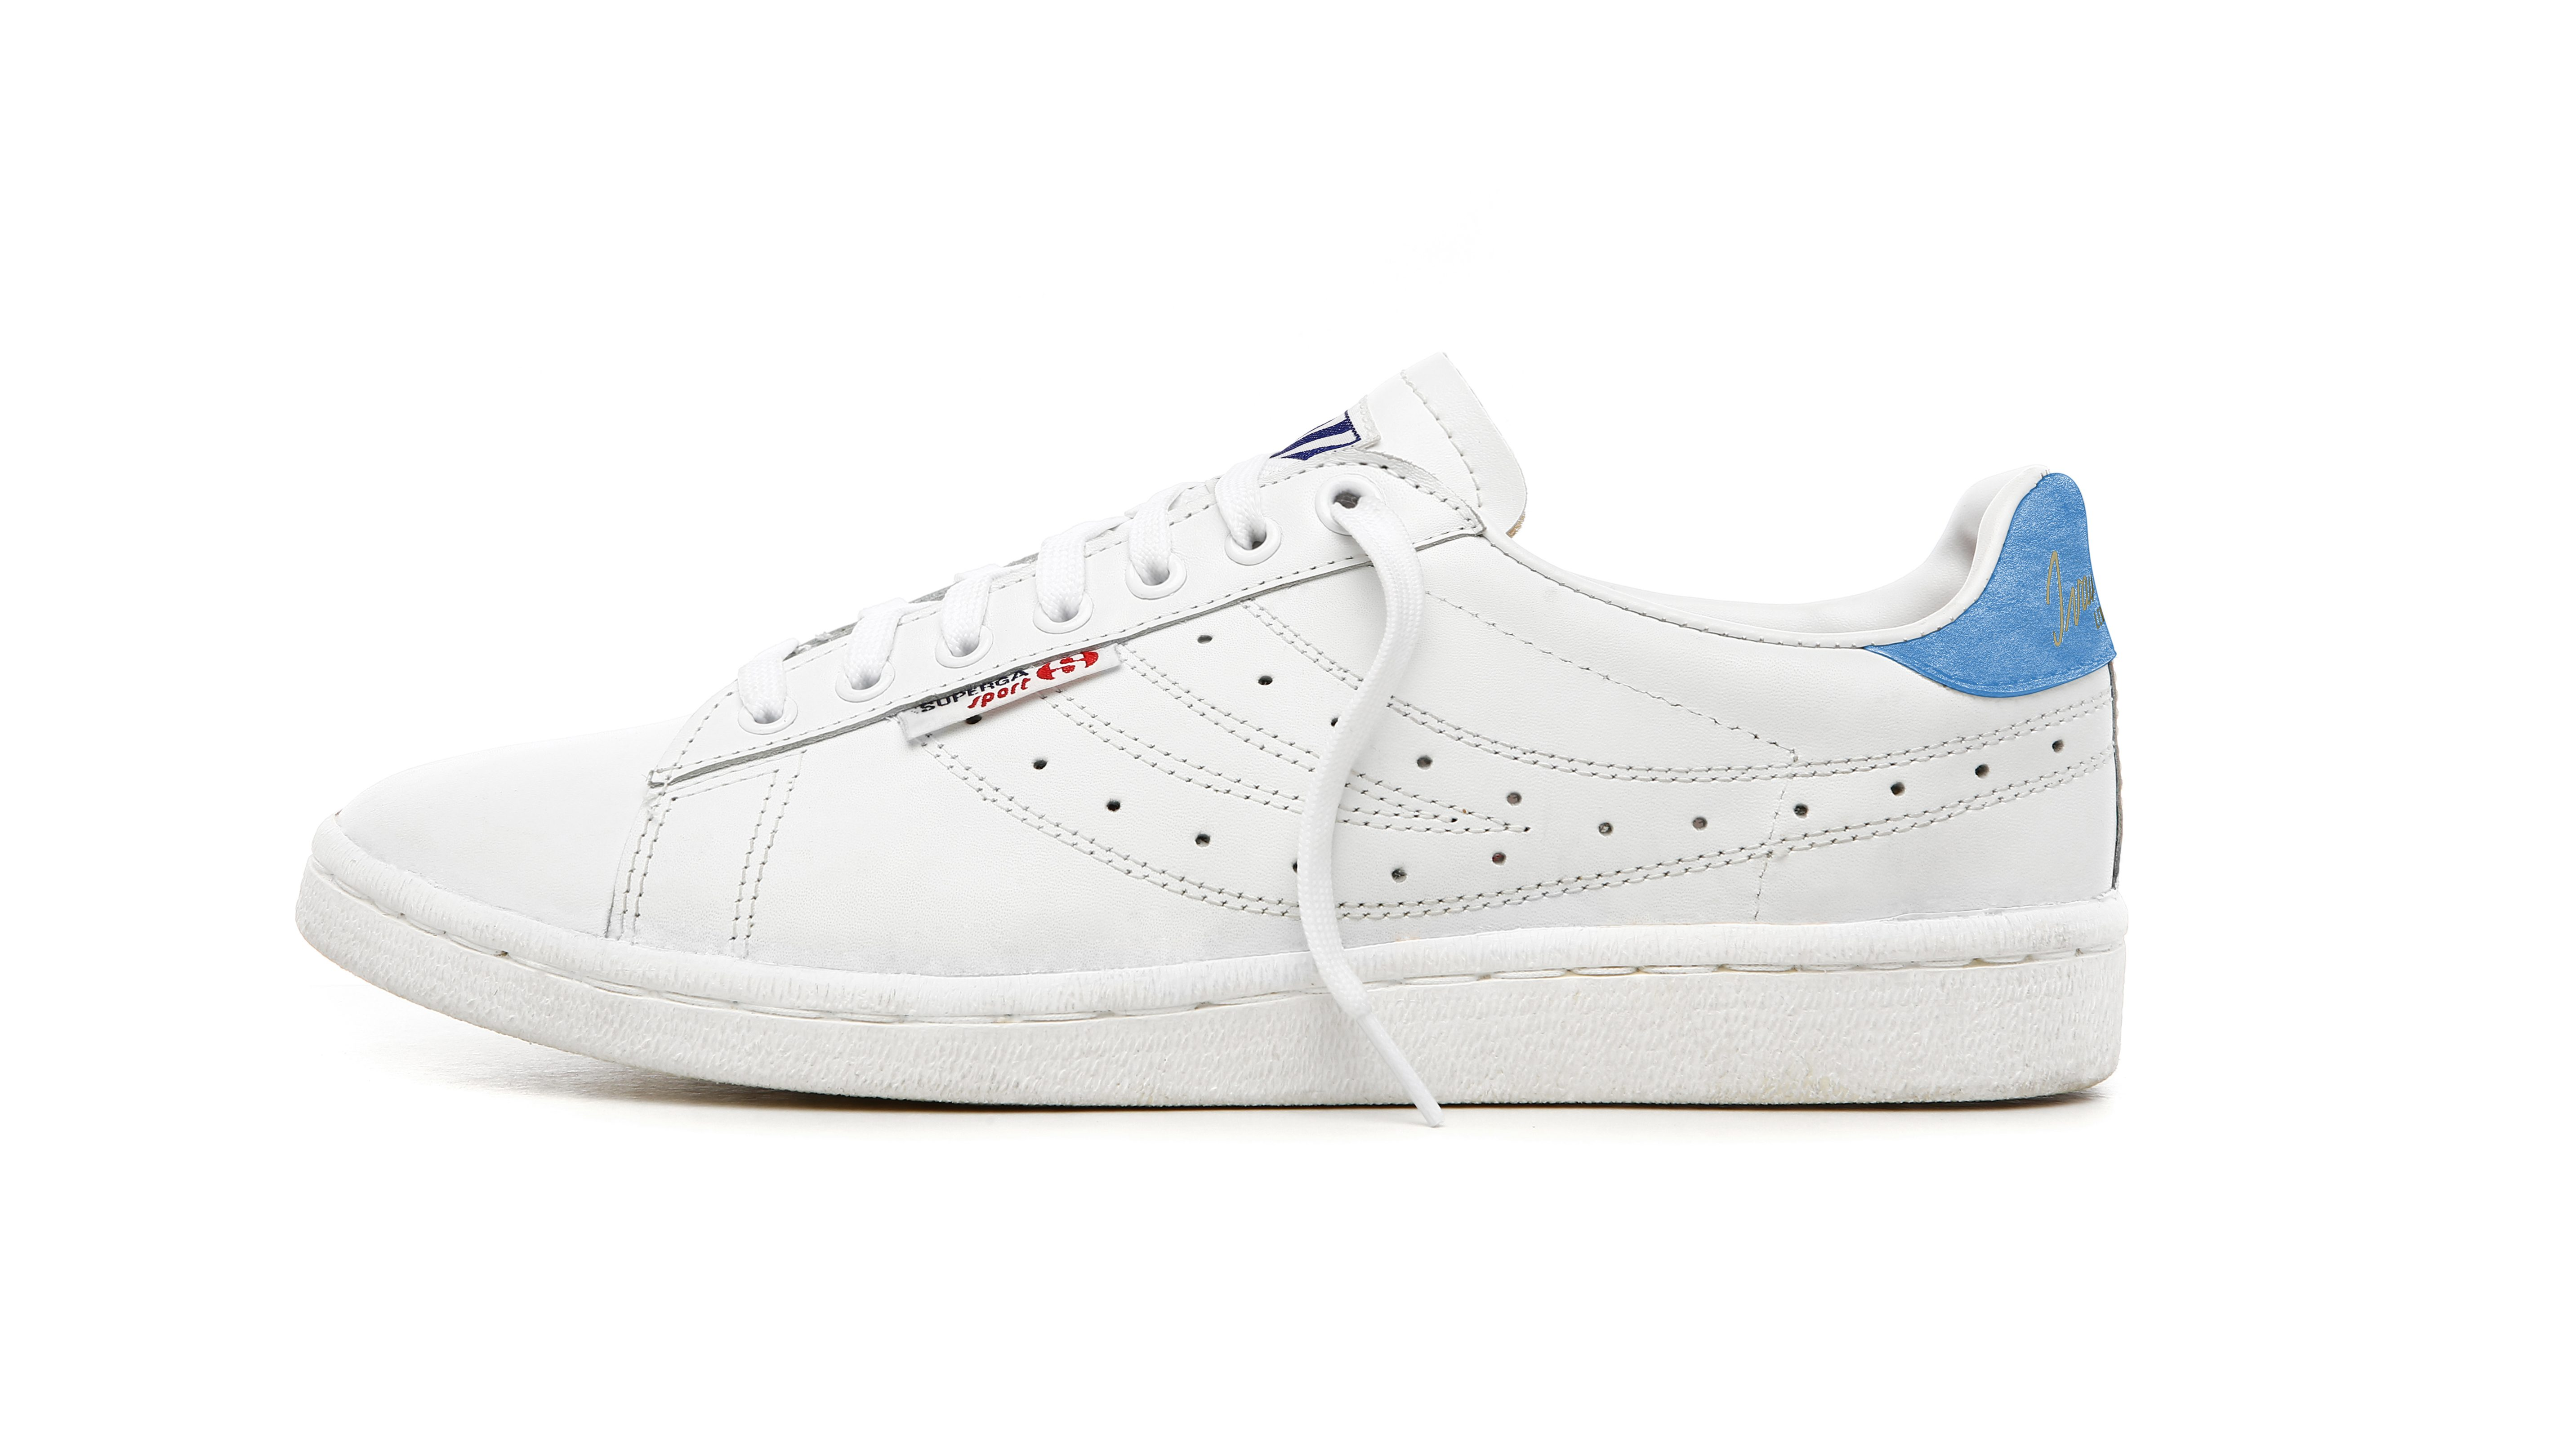 Superga IVAN LENDL LEATHER SNEAKERS